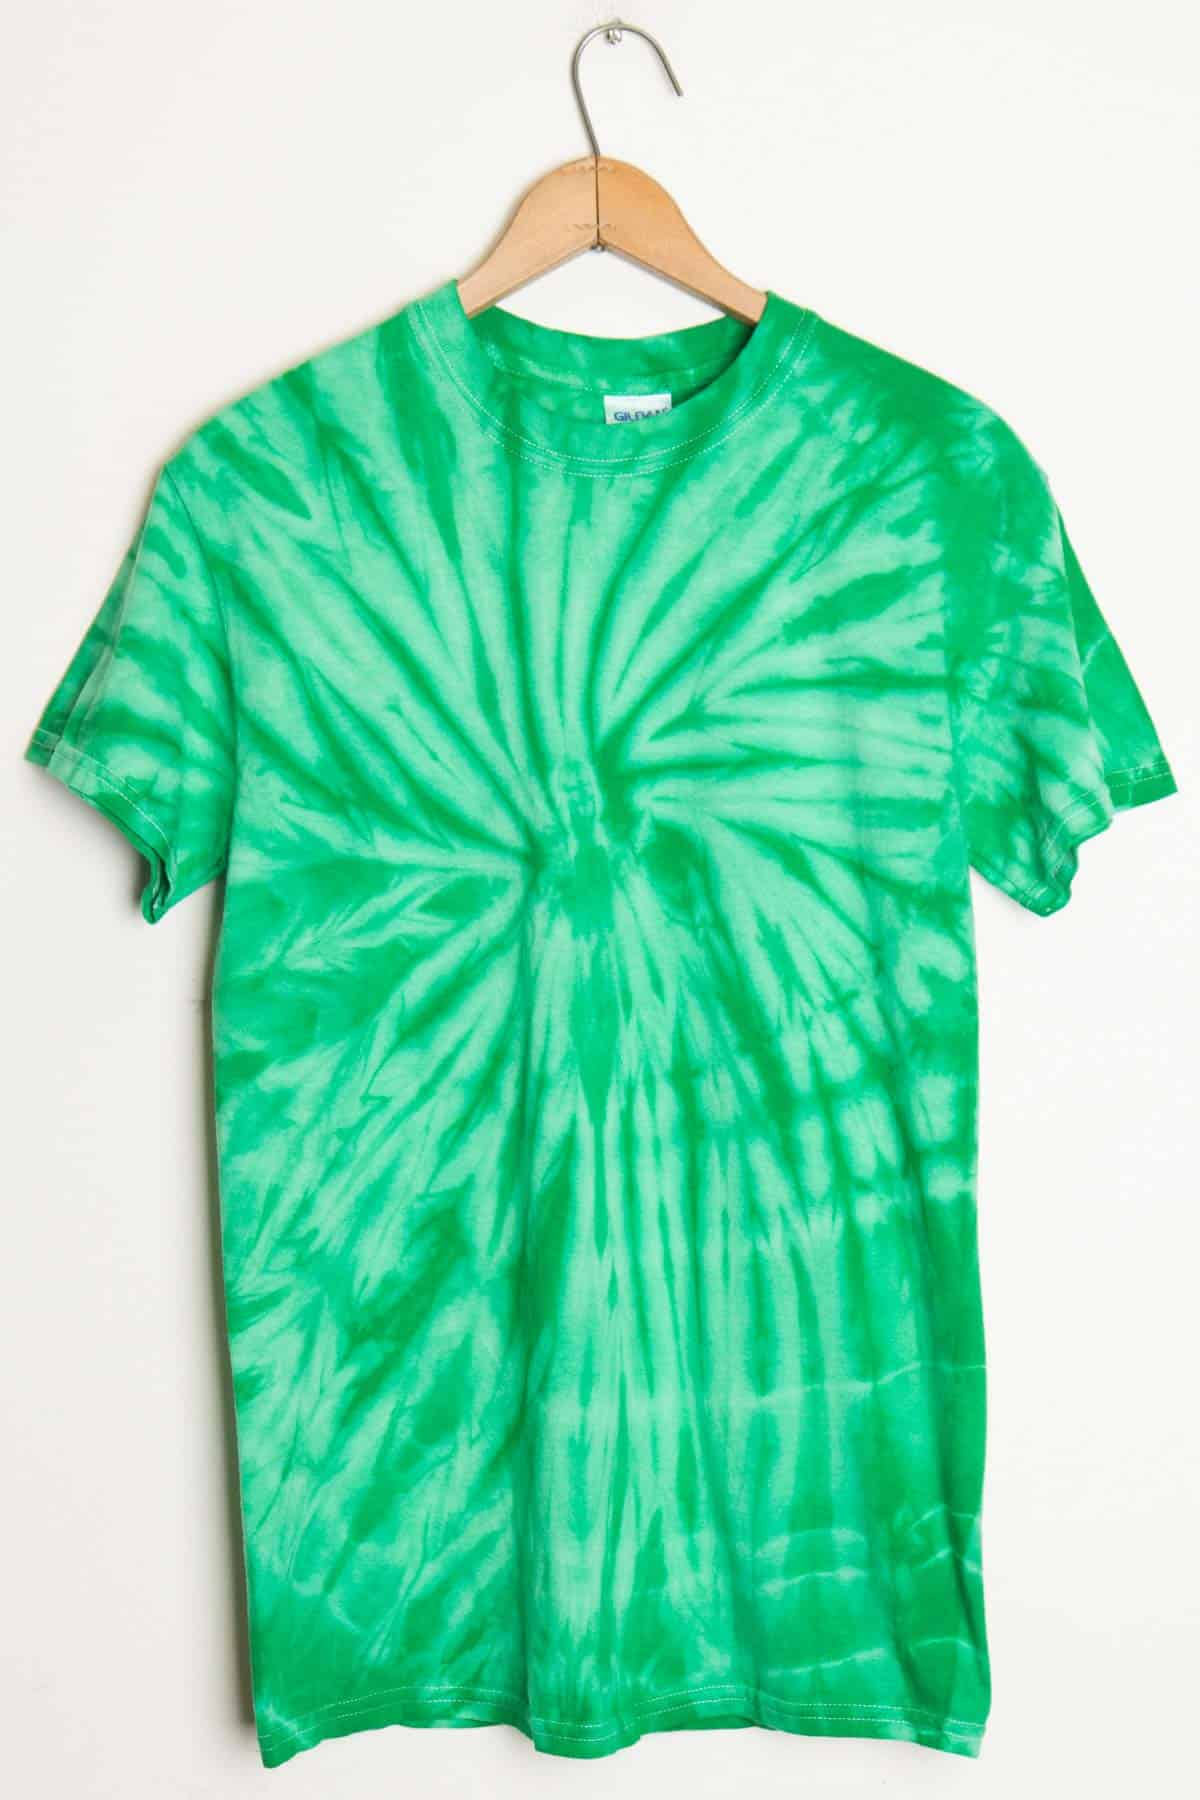 White and green shirt custom shirt for Customized tie dye shirts